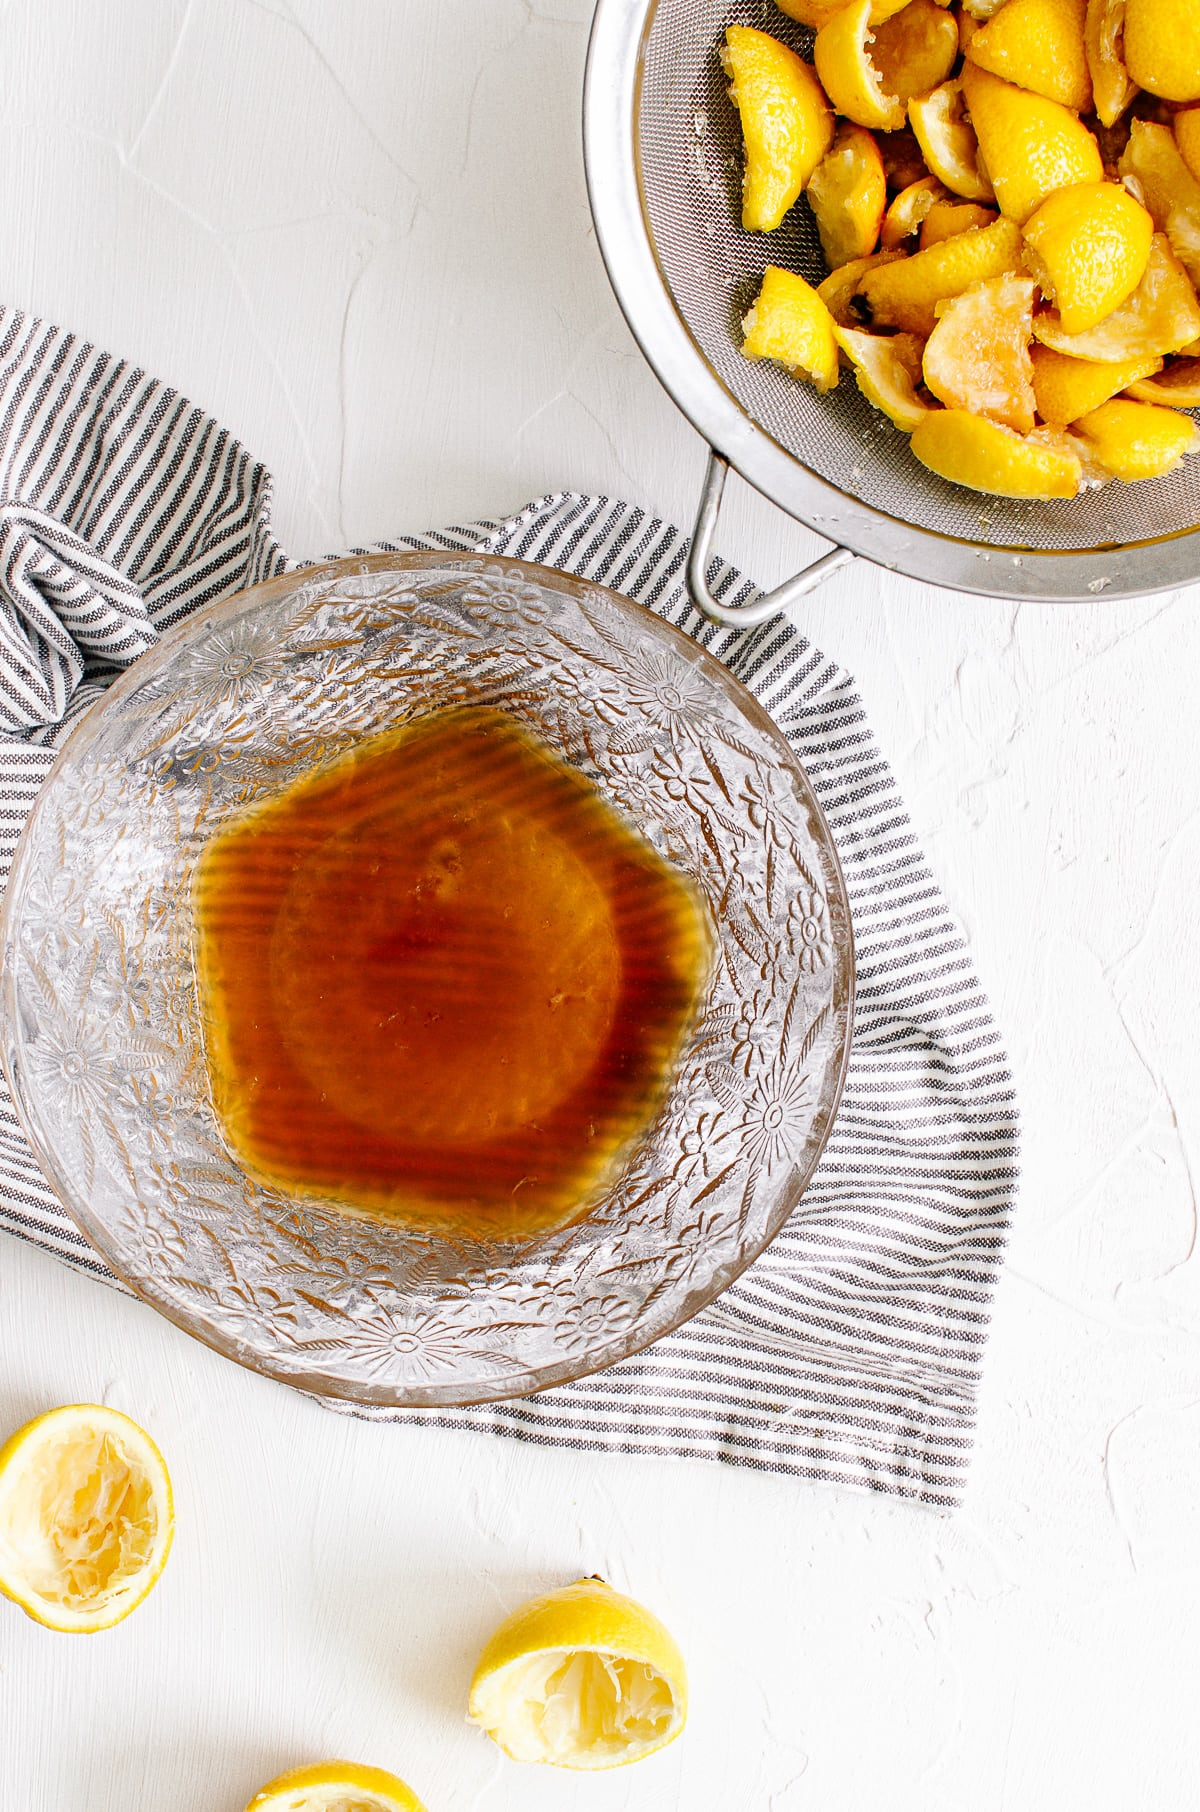 A bowl of lemon syrup with a mesh strainer of lemon rinds on the side.